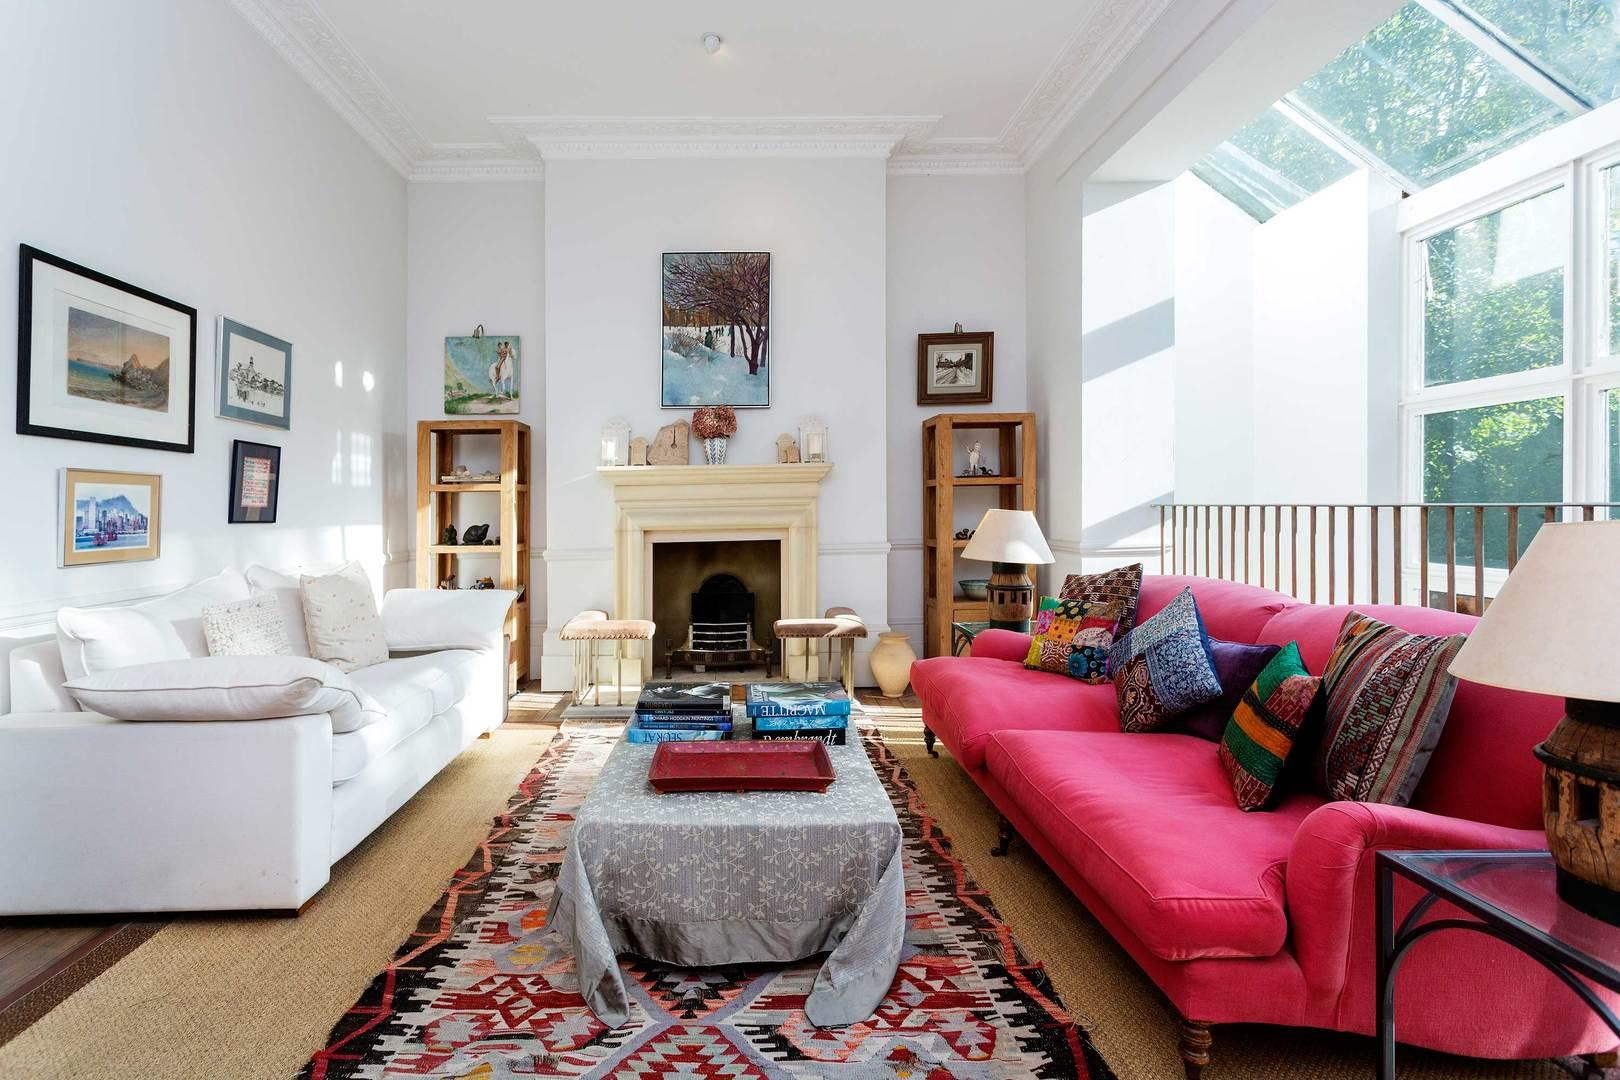 Property Image 1 - Attractive Family Home in Popular West London